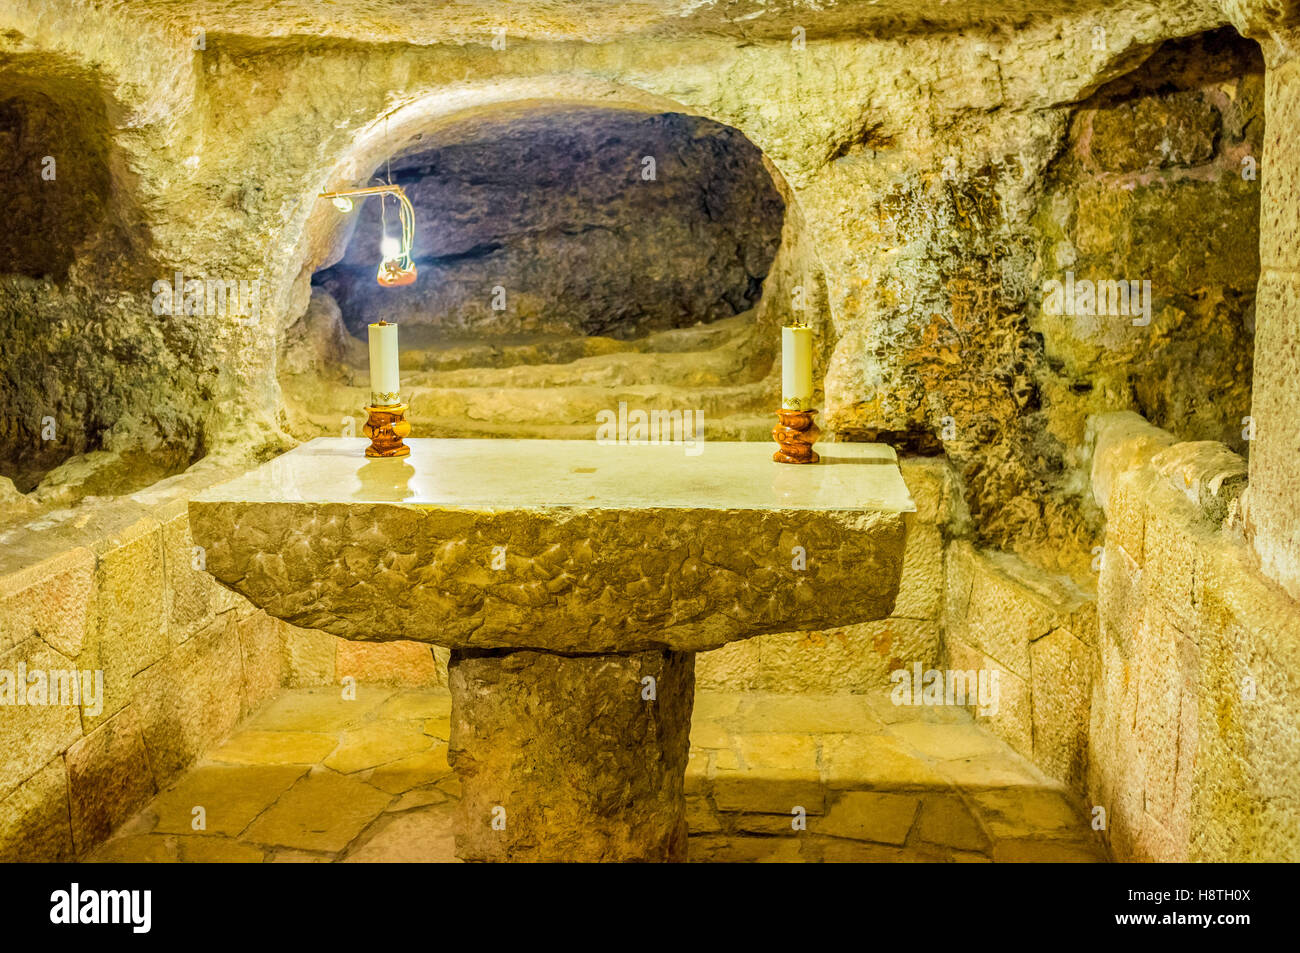 bethlehem israel grotto of nativity stockfotos bethlehem. Black Bedroom Furniture Sets. Home Design Ideas